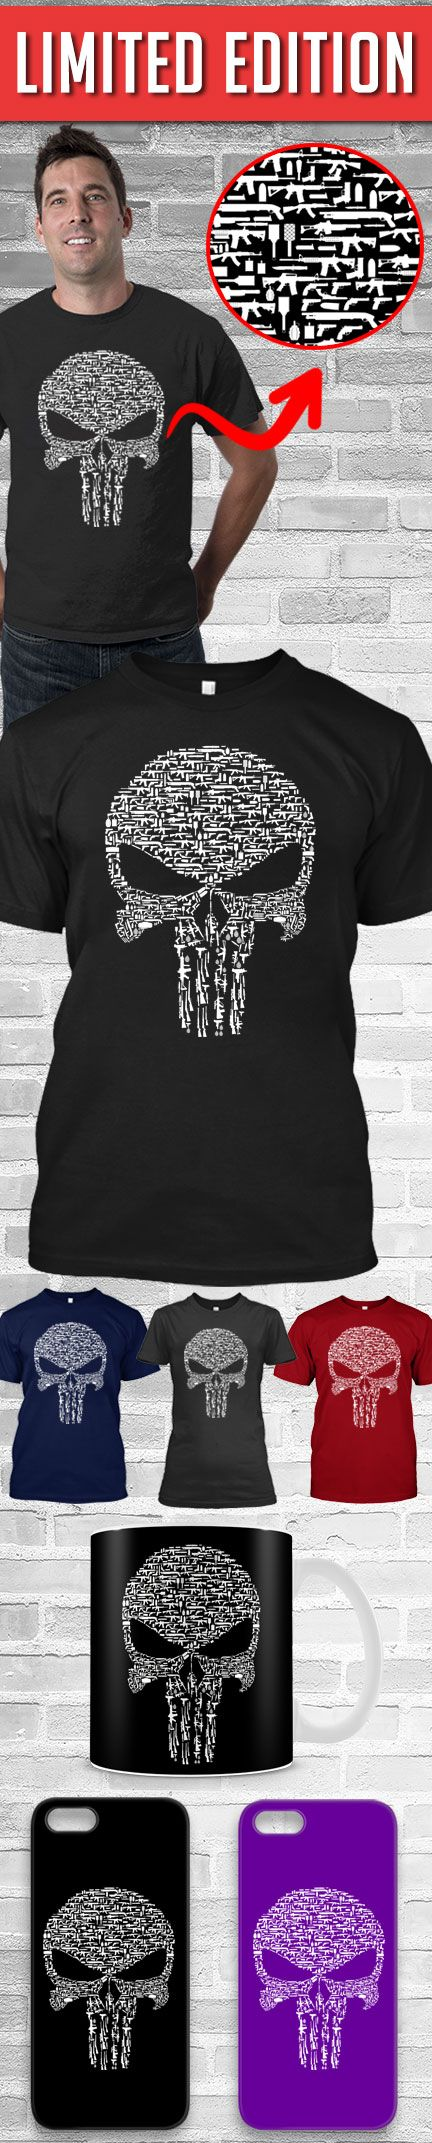 The Punisher Shirt! Click The Image To Buy It Now or Tag Someone You Want To Buy This For. #guns